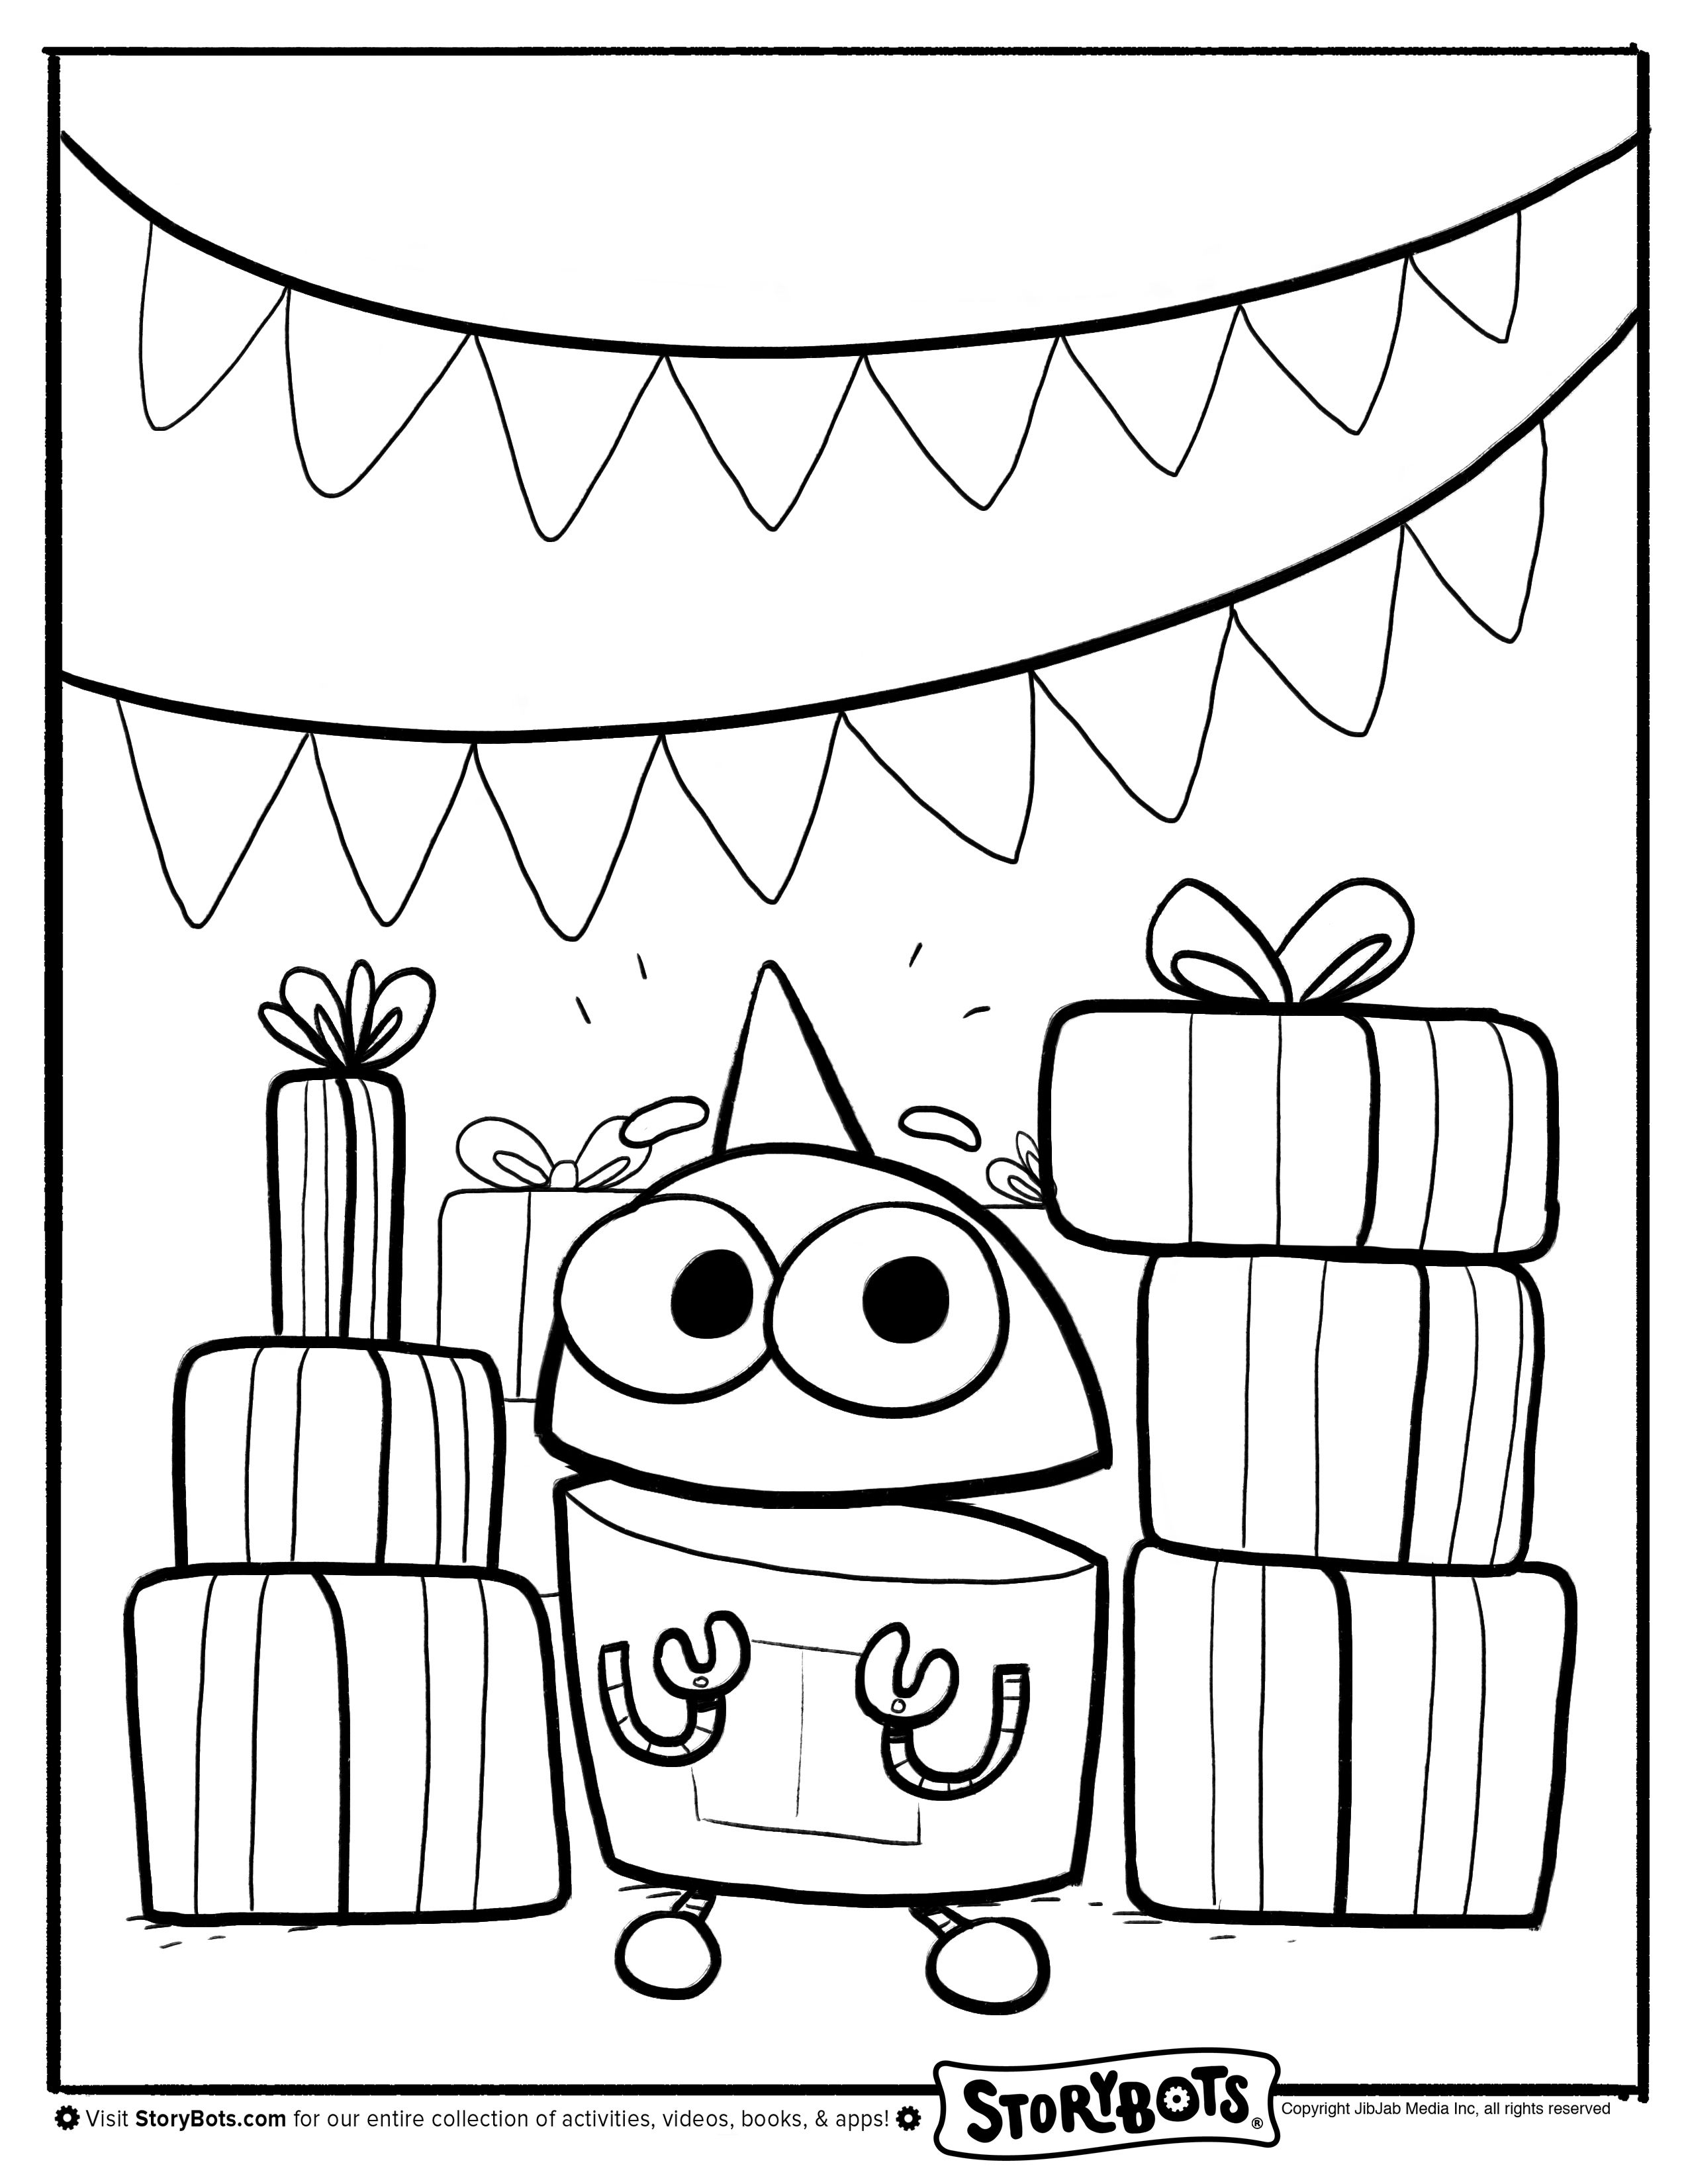 Storybots Coloring Pages